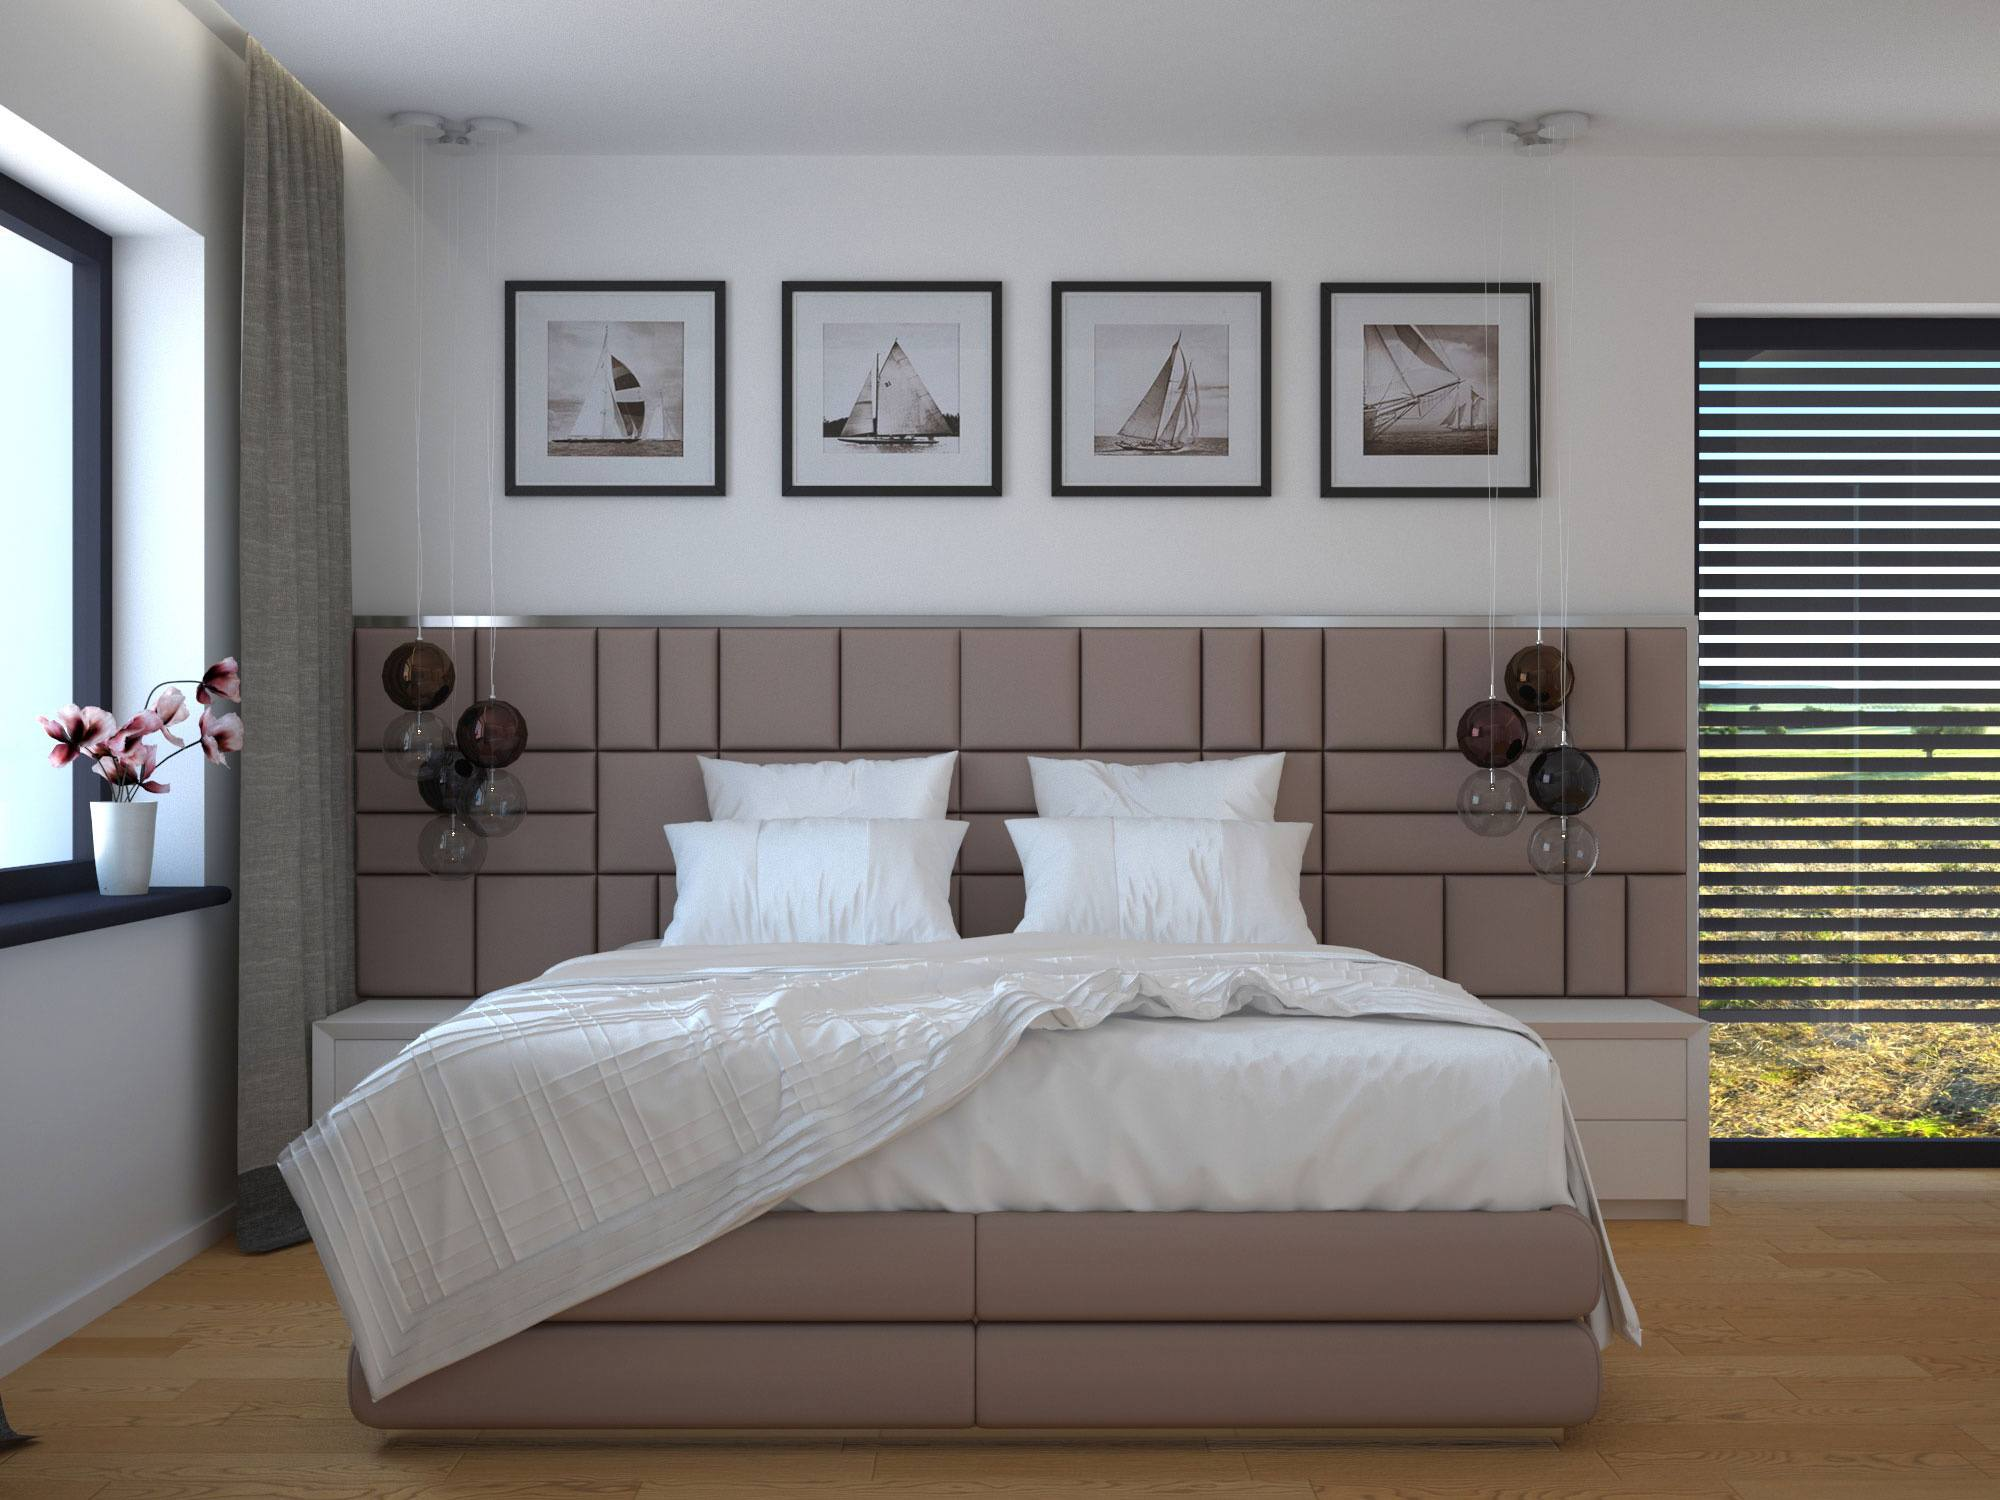 150 Square Feet Bedroom Interior Decoration and Photos. Soft headboard wall zone